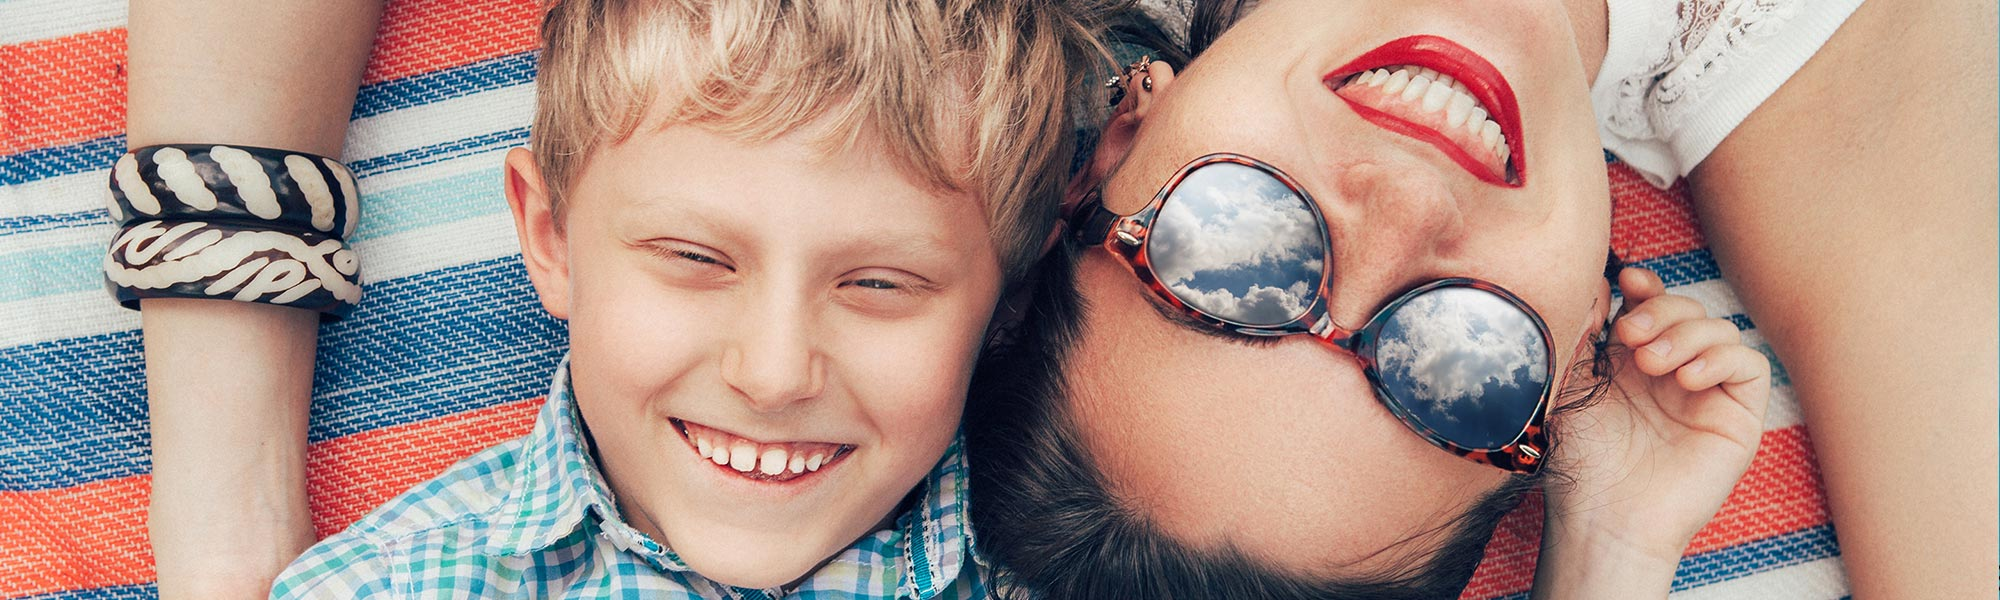 Mother and Son outdoors sunglasses